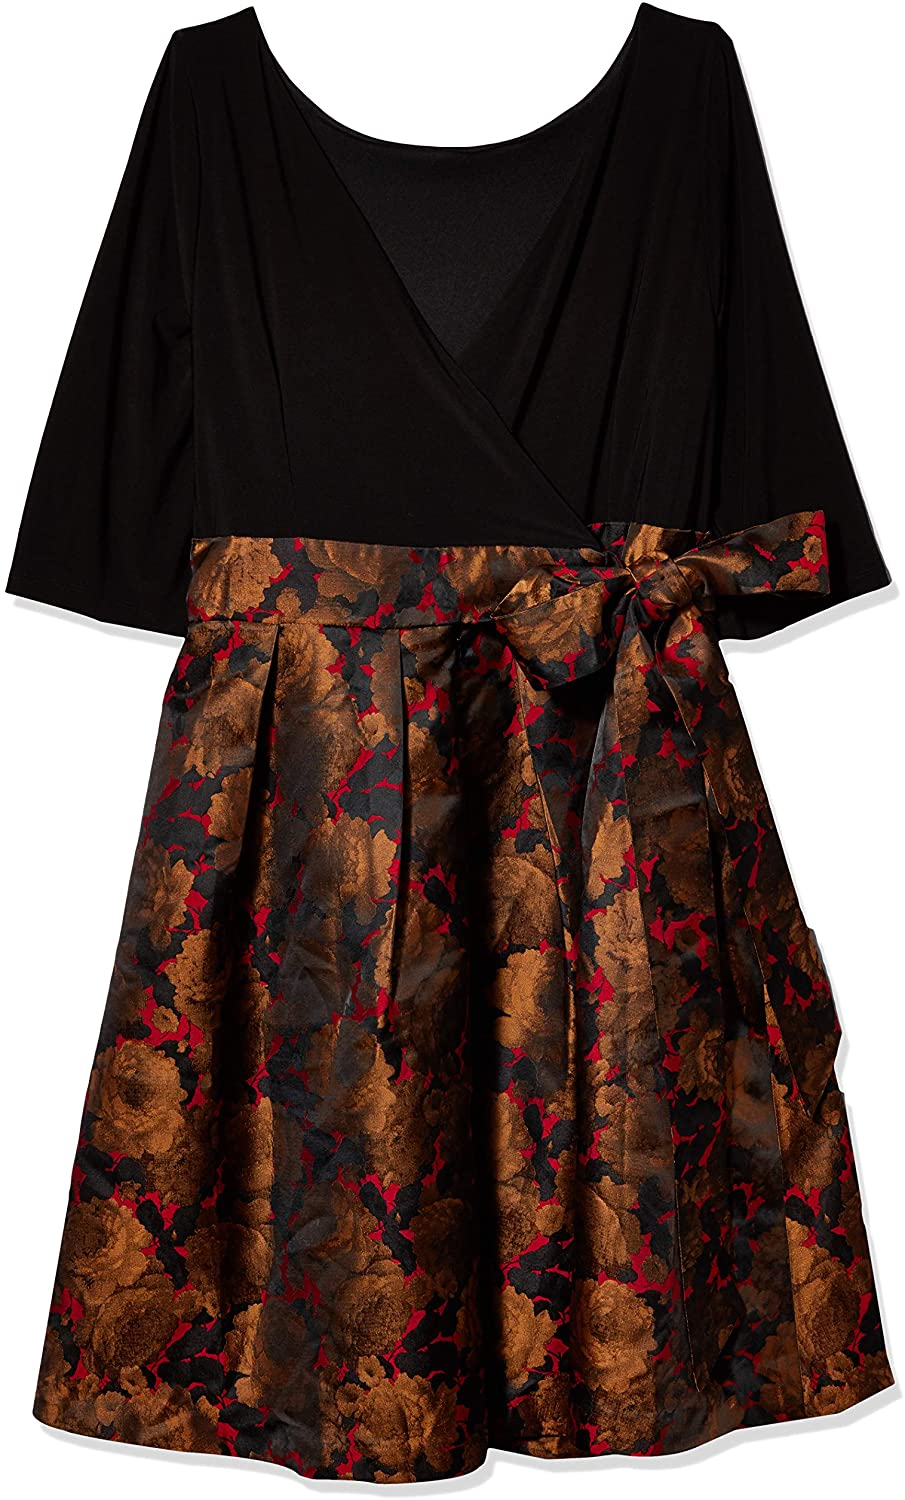 Adrianna Papell Women's Size Plus Rose Jacquard Fit and Flare with Matte Jersey Top Dress